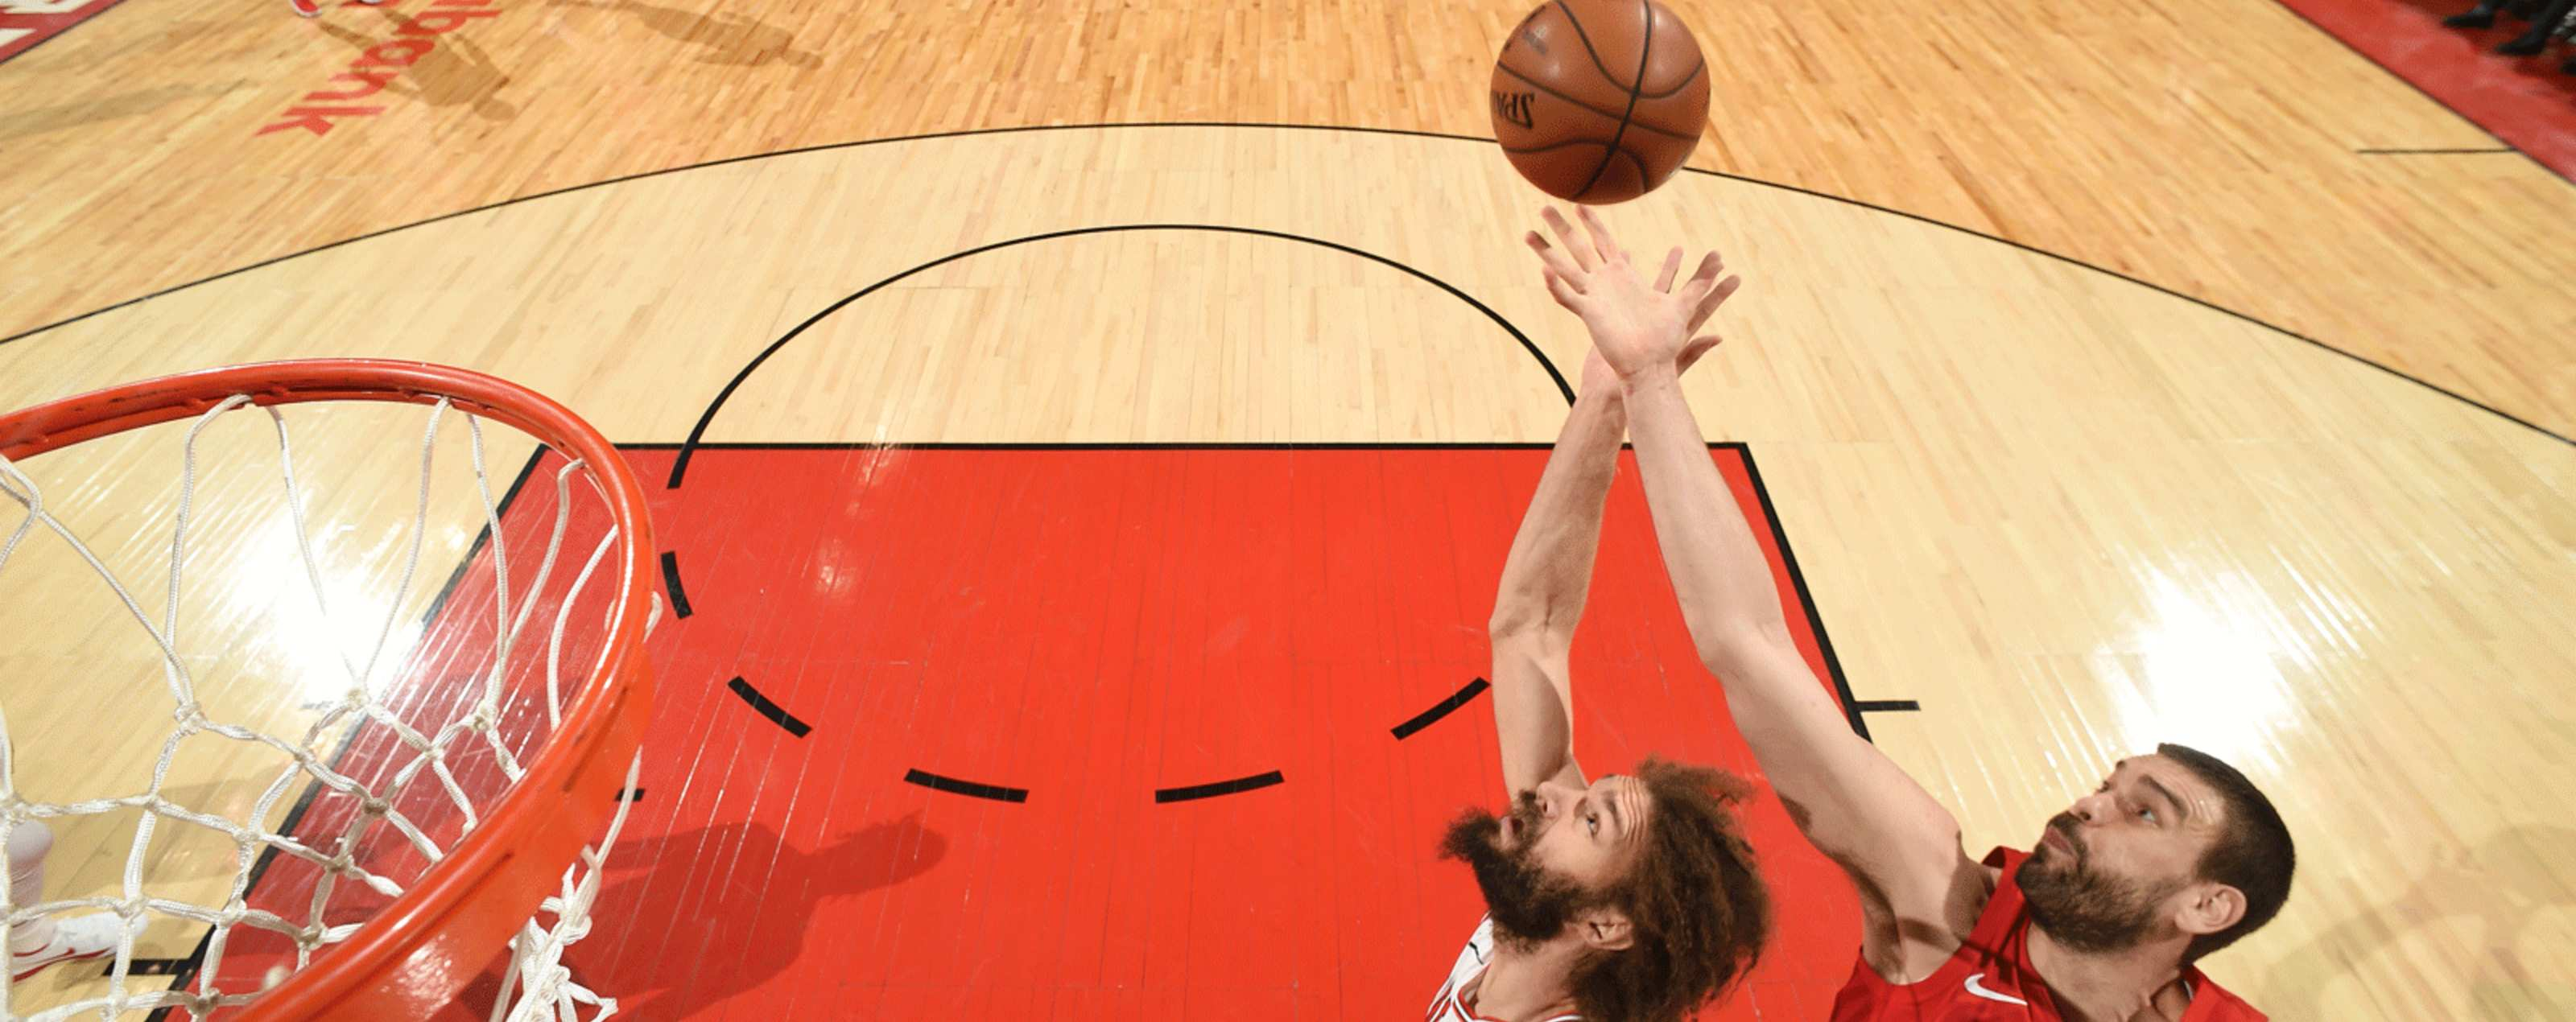 Robin Lopez #42 of the Chicago Bulls and Marc Gasol #33 of the Toronto Raptors go up for the rebound on March 26, 2019 at the Scotiabank Arena in Toronto, Ontario, Canada.